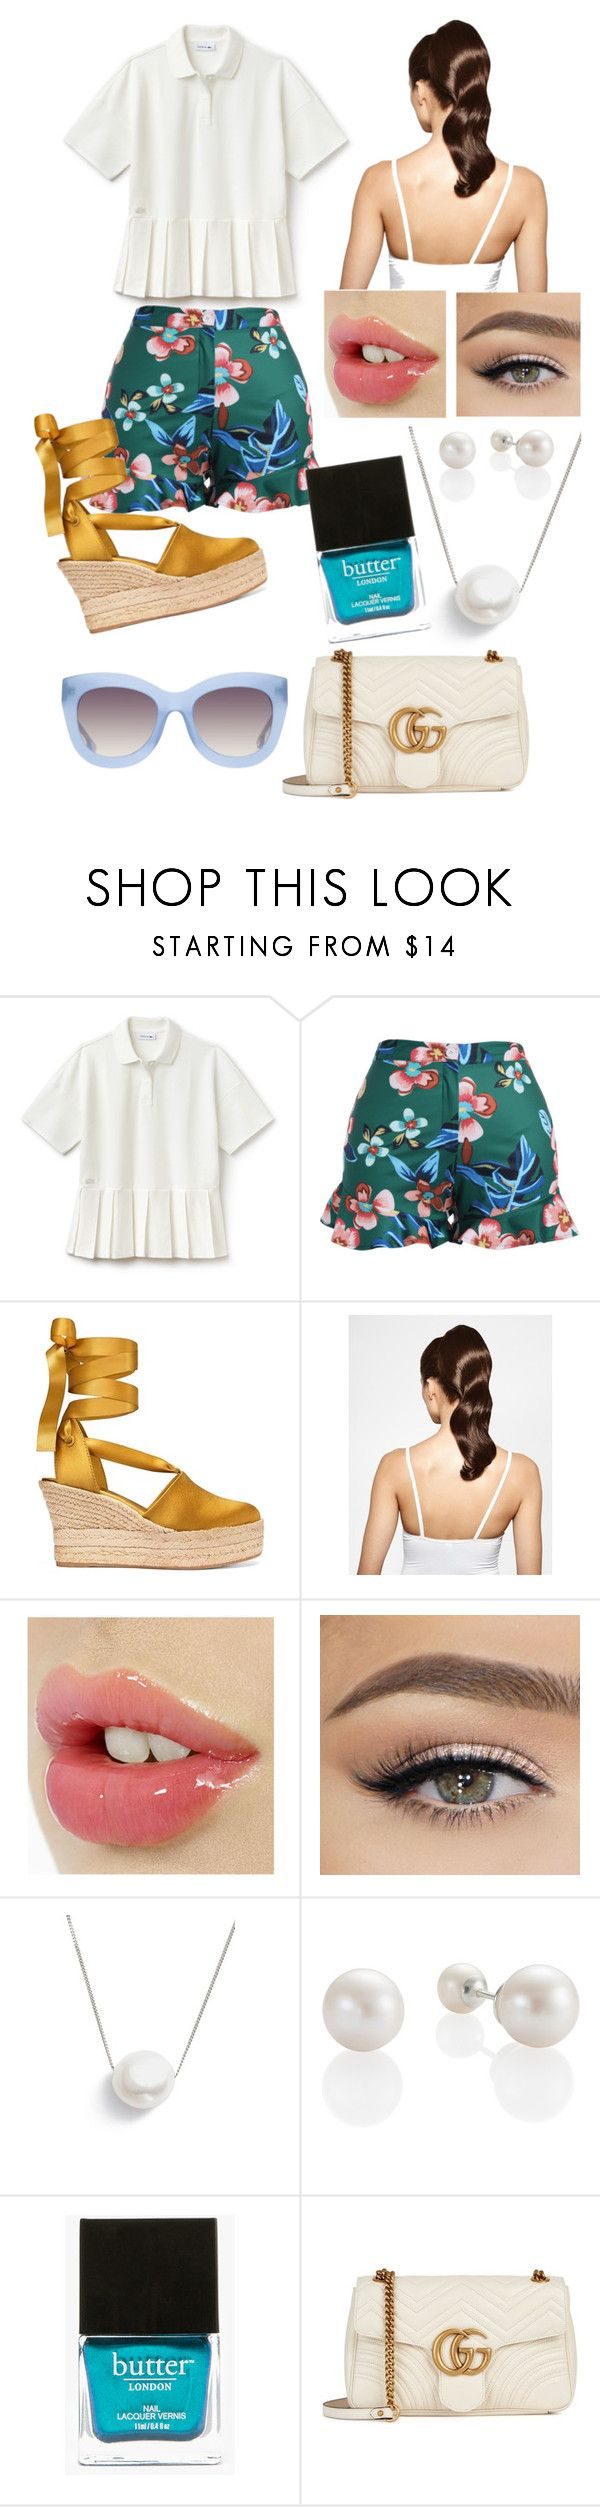 """""""Emeraude"""" by judehassan on Polyvore featuring Lacoste, Tory Burch, Hershesons, Chan Luu, Butter London, Gucci and Alice + Olivia"""